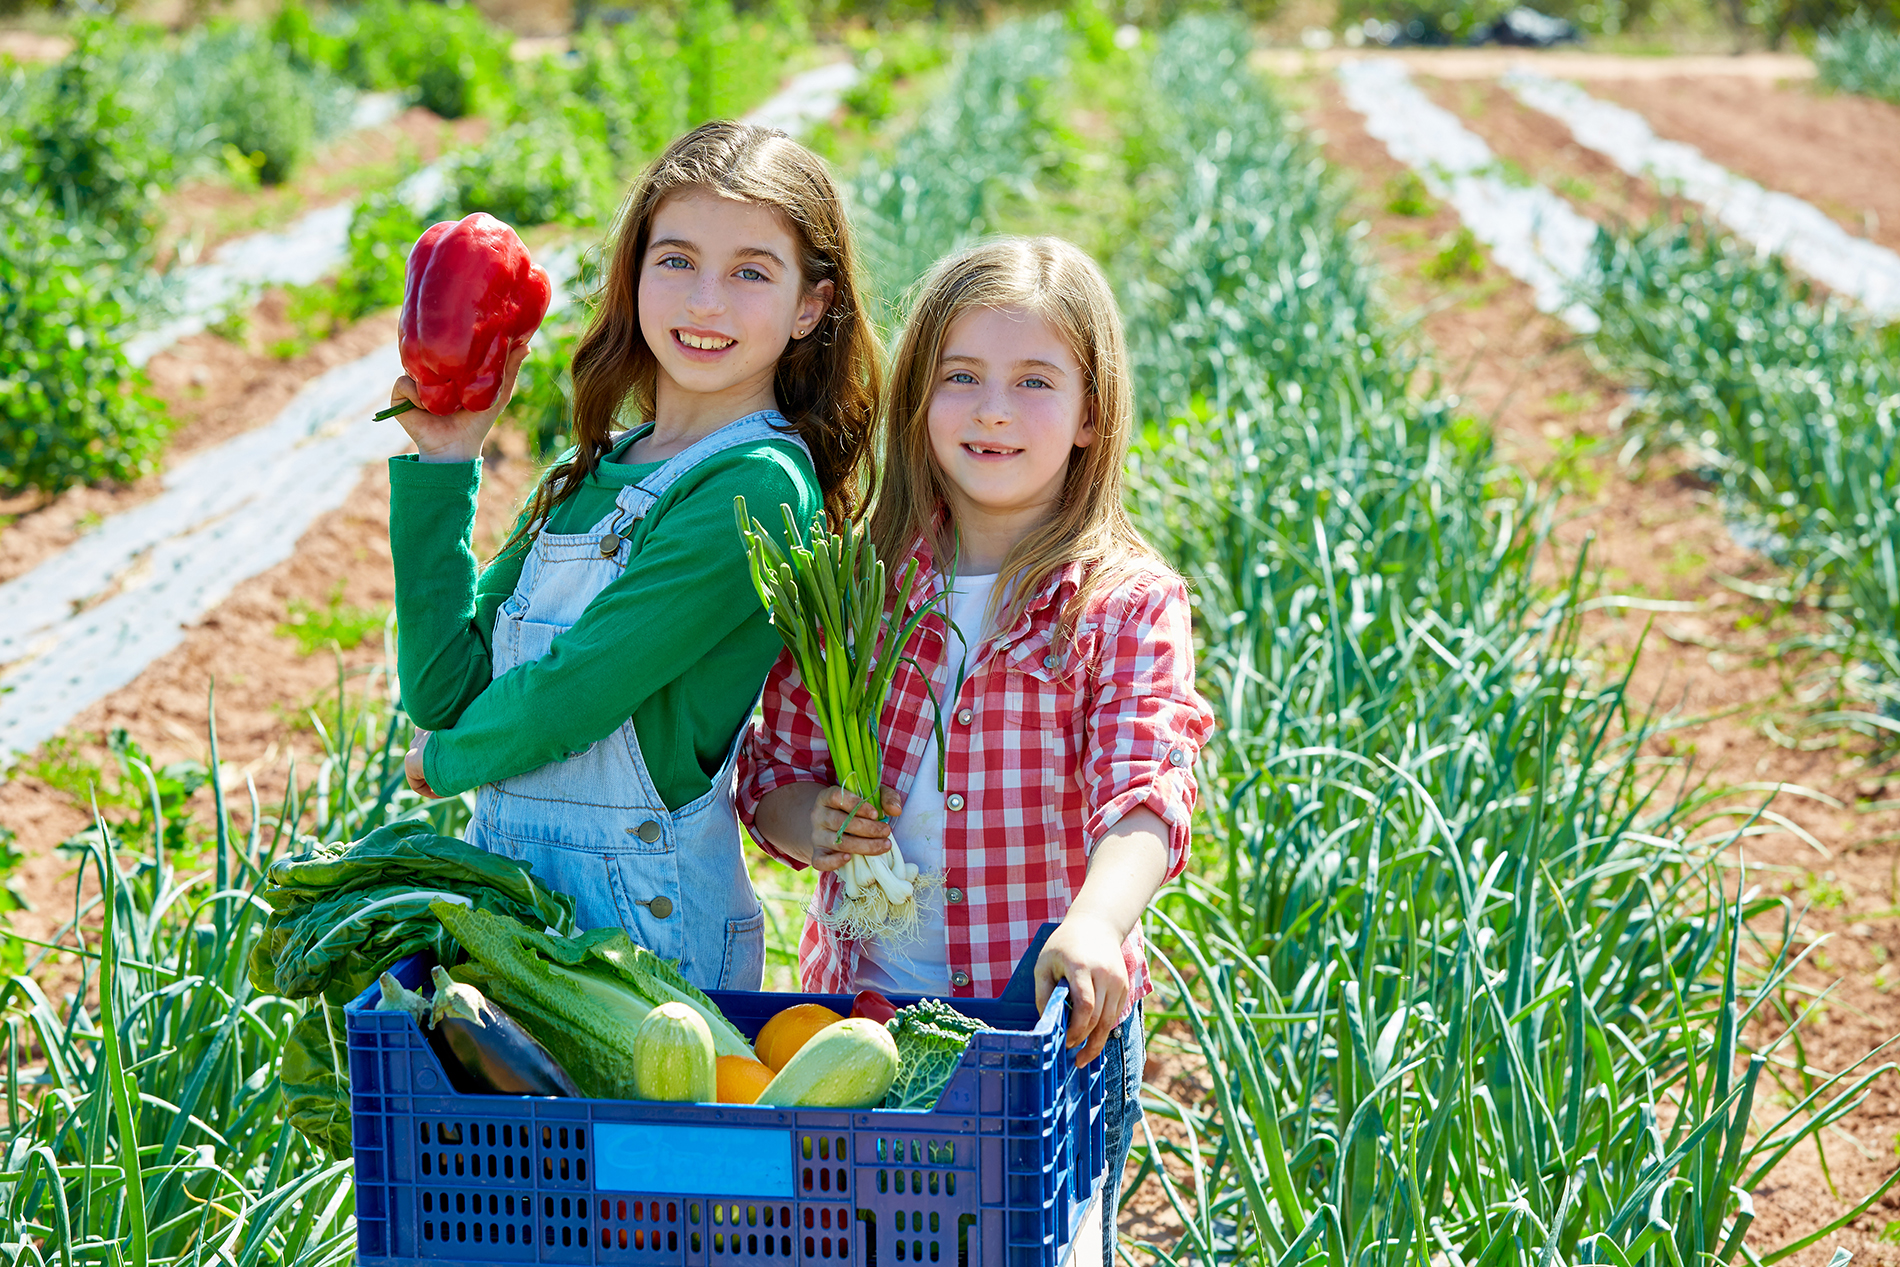 Both girls carrying vegetables 53483